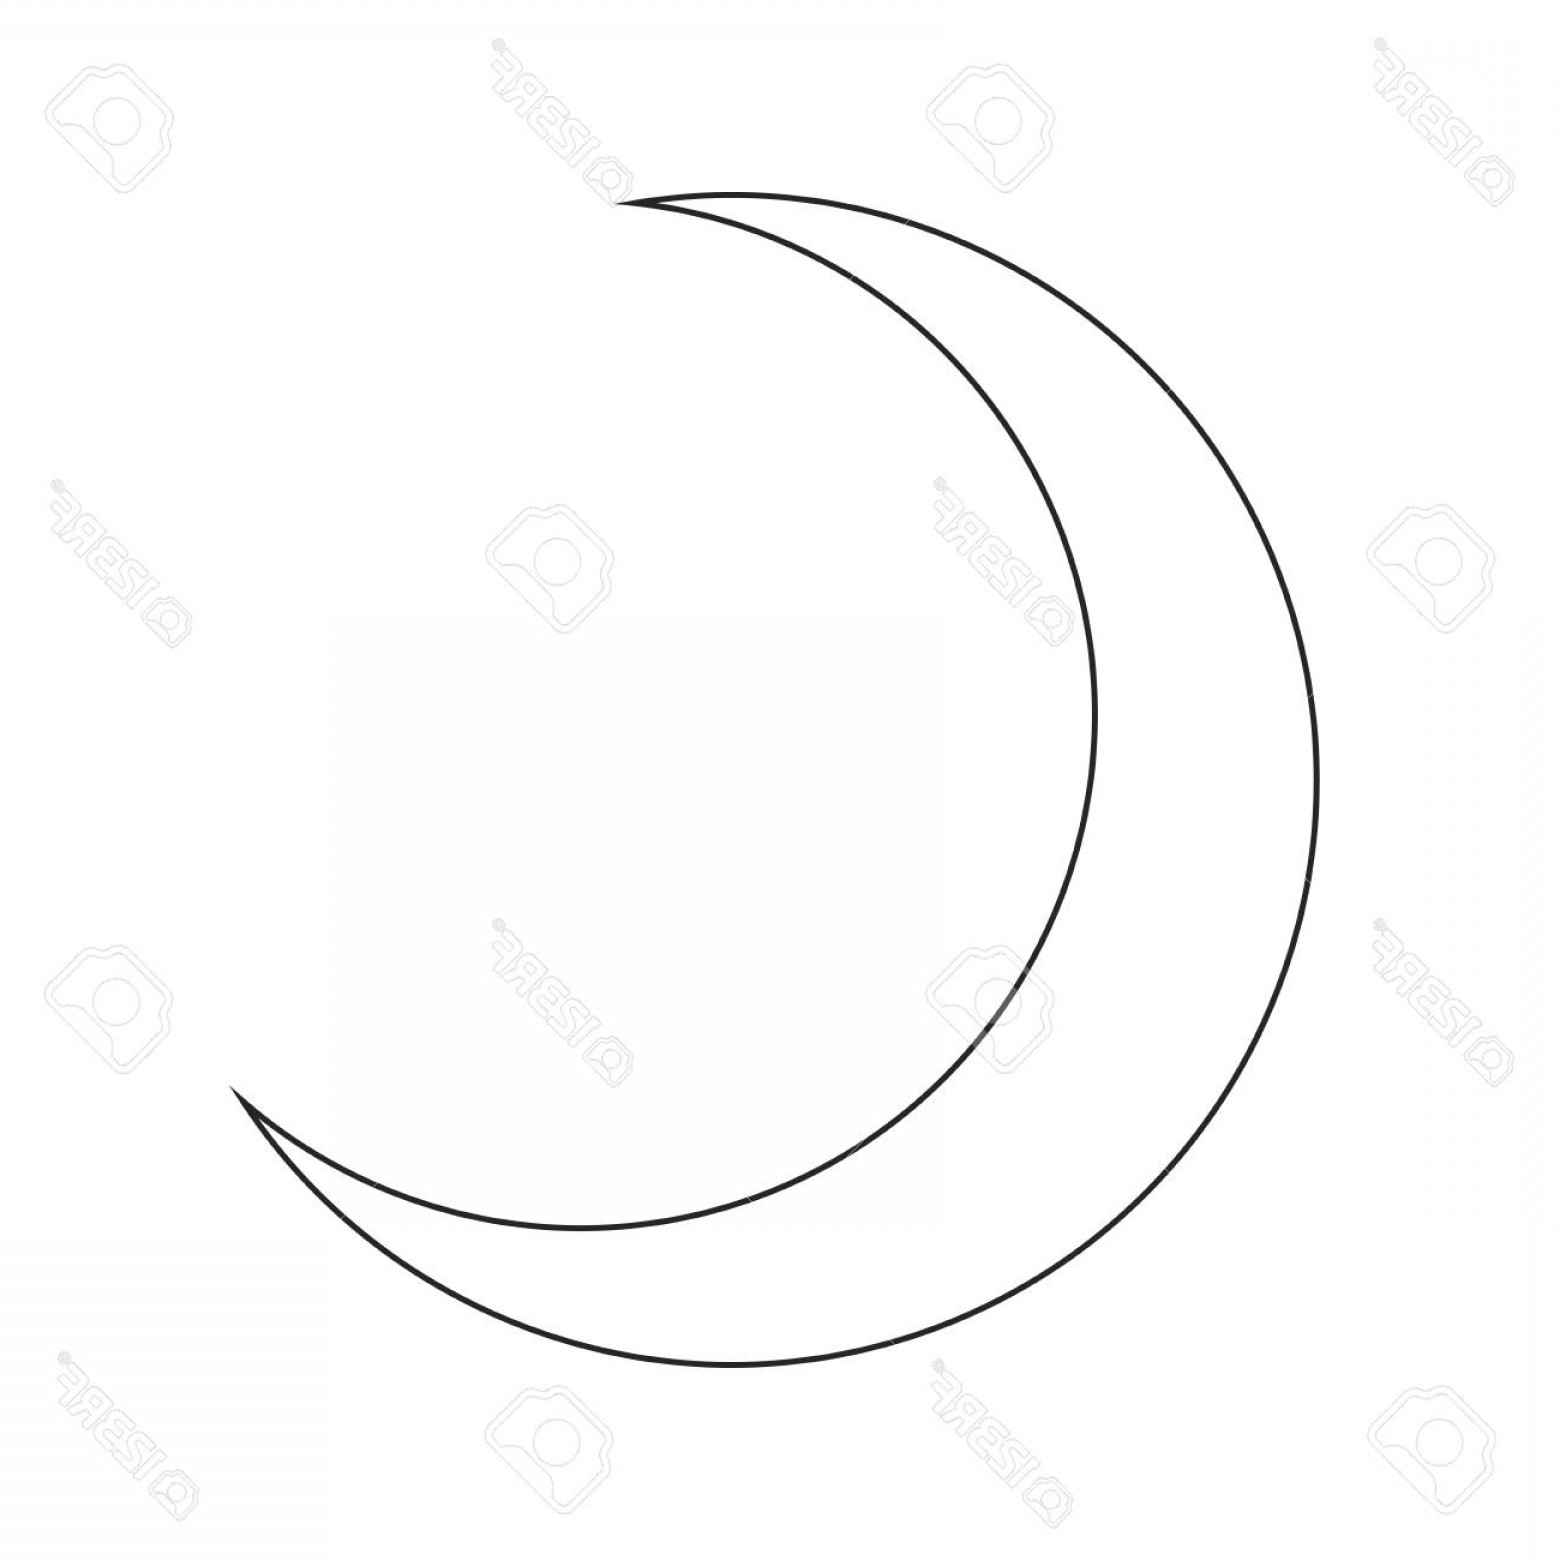 Cresent Moon Vector: Photostock Vector Crescent Moon Silhouette Vector Symbol Icon Design Beautiful Illustration Isolated On White Backgrou